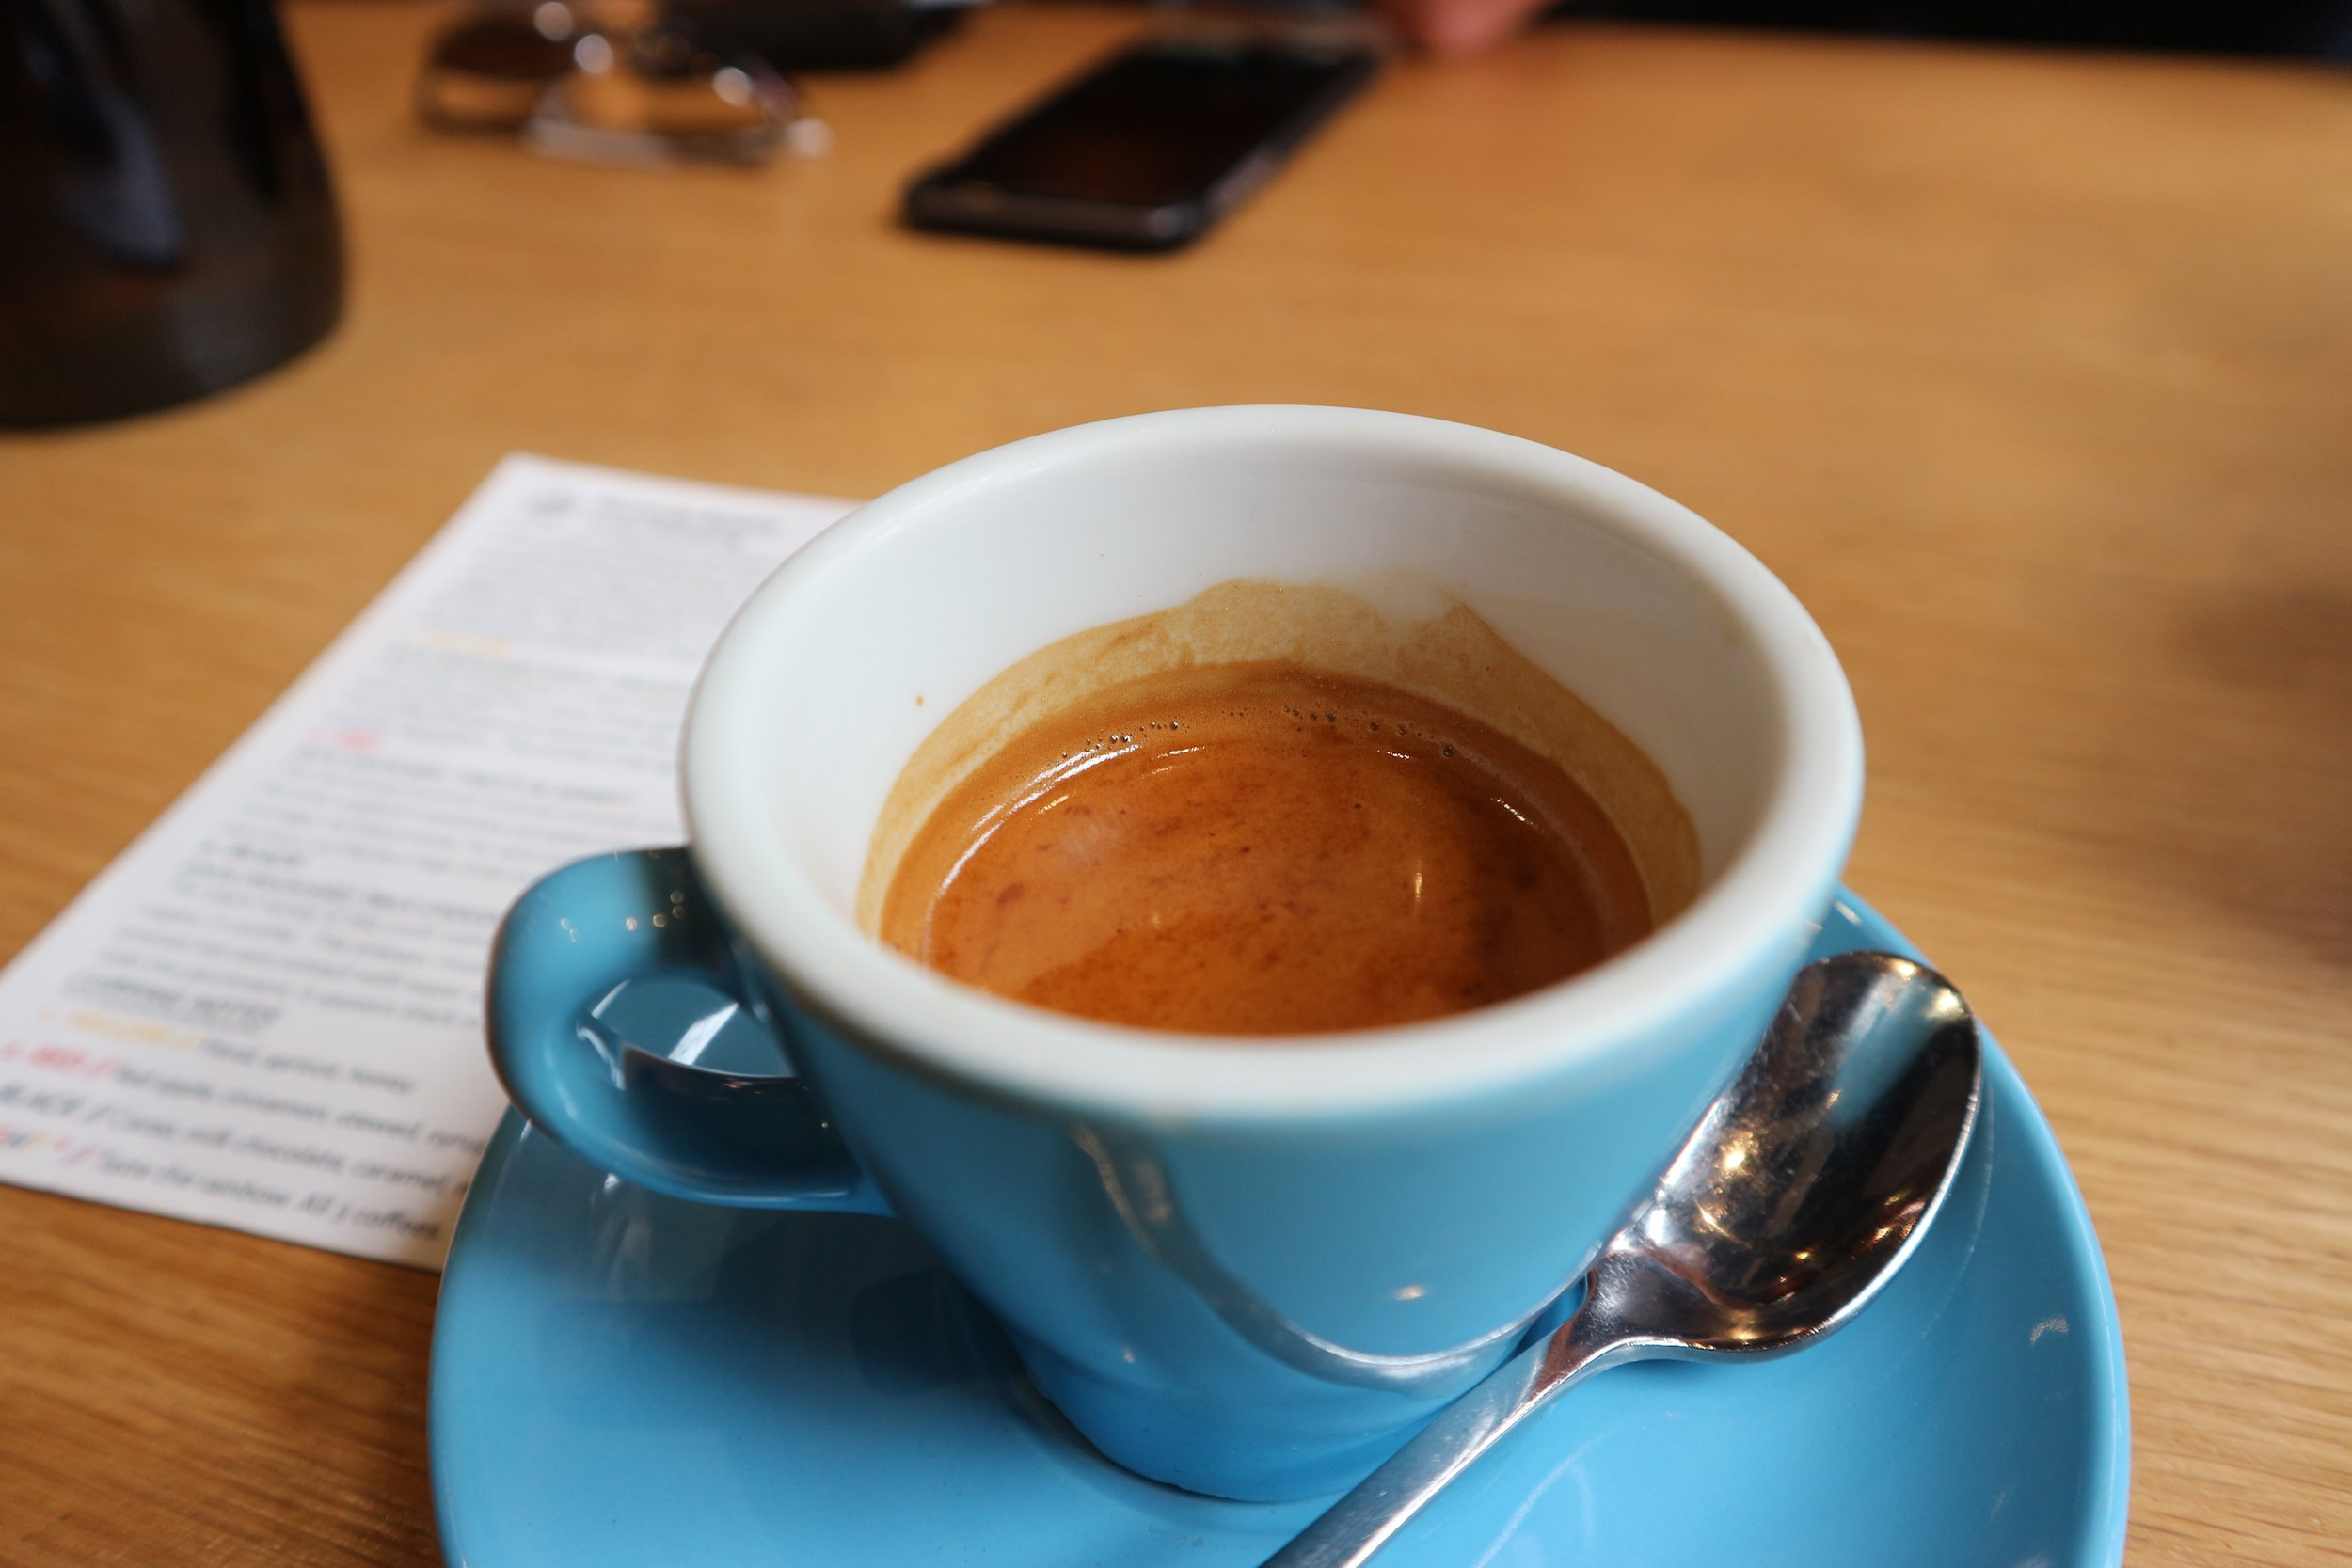 Espresso (RED) - Boasts stewed fruit, red apple, jam, and cinnamon.